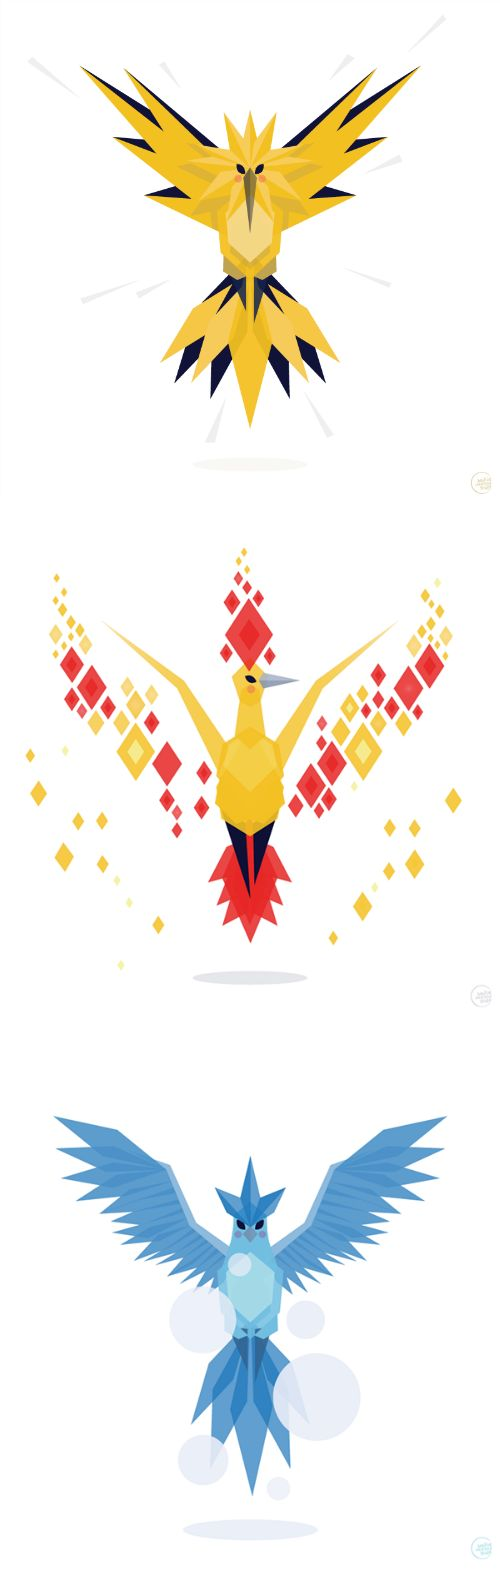 25 best ideas about pokemon moltres on pinterest real pokemon games - 25 Best Ideas About Pokemon Moltres On Pinterest Real Pokemon Games Legendarily Minimalist Download